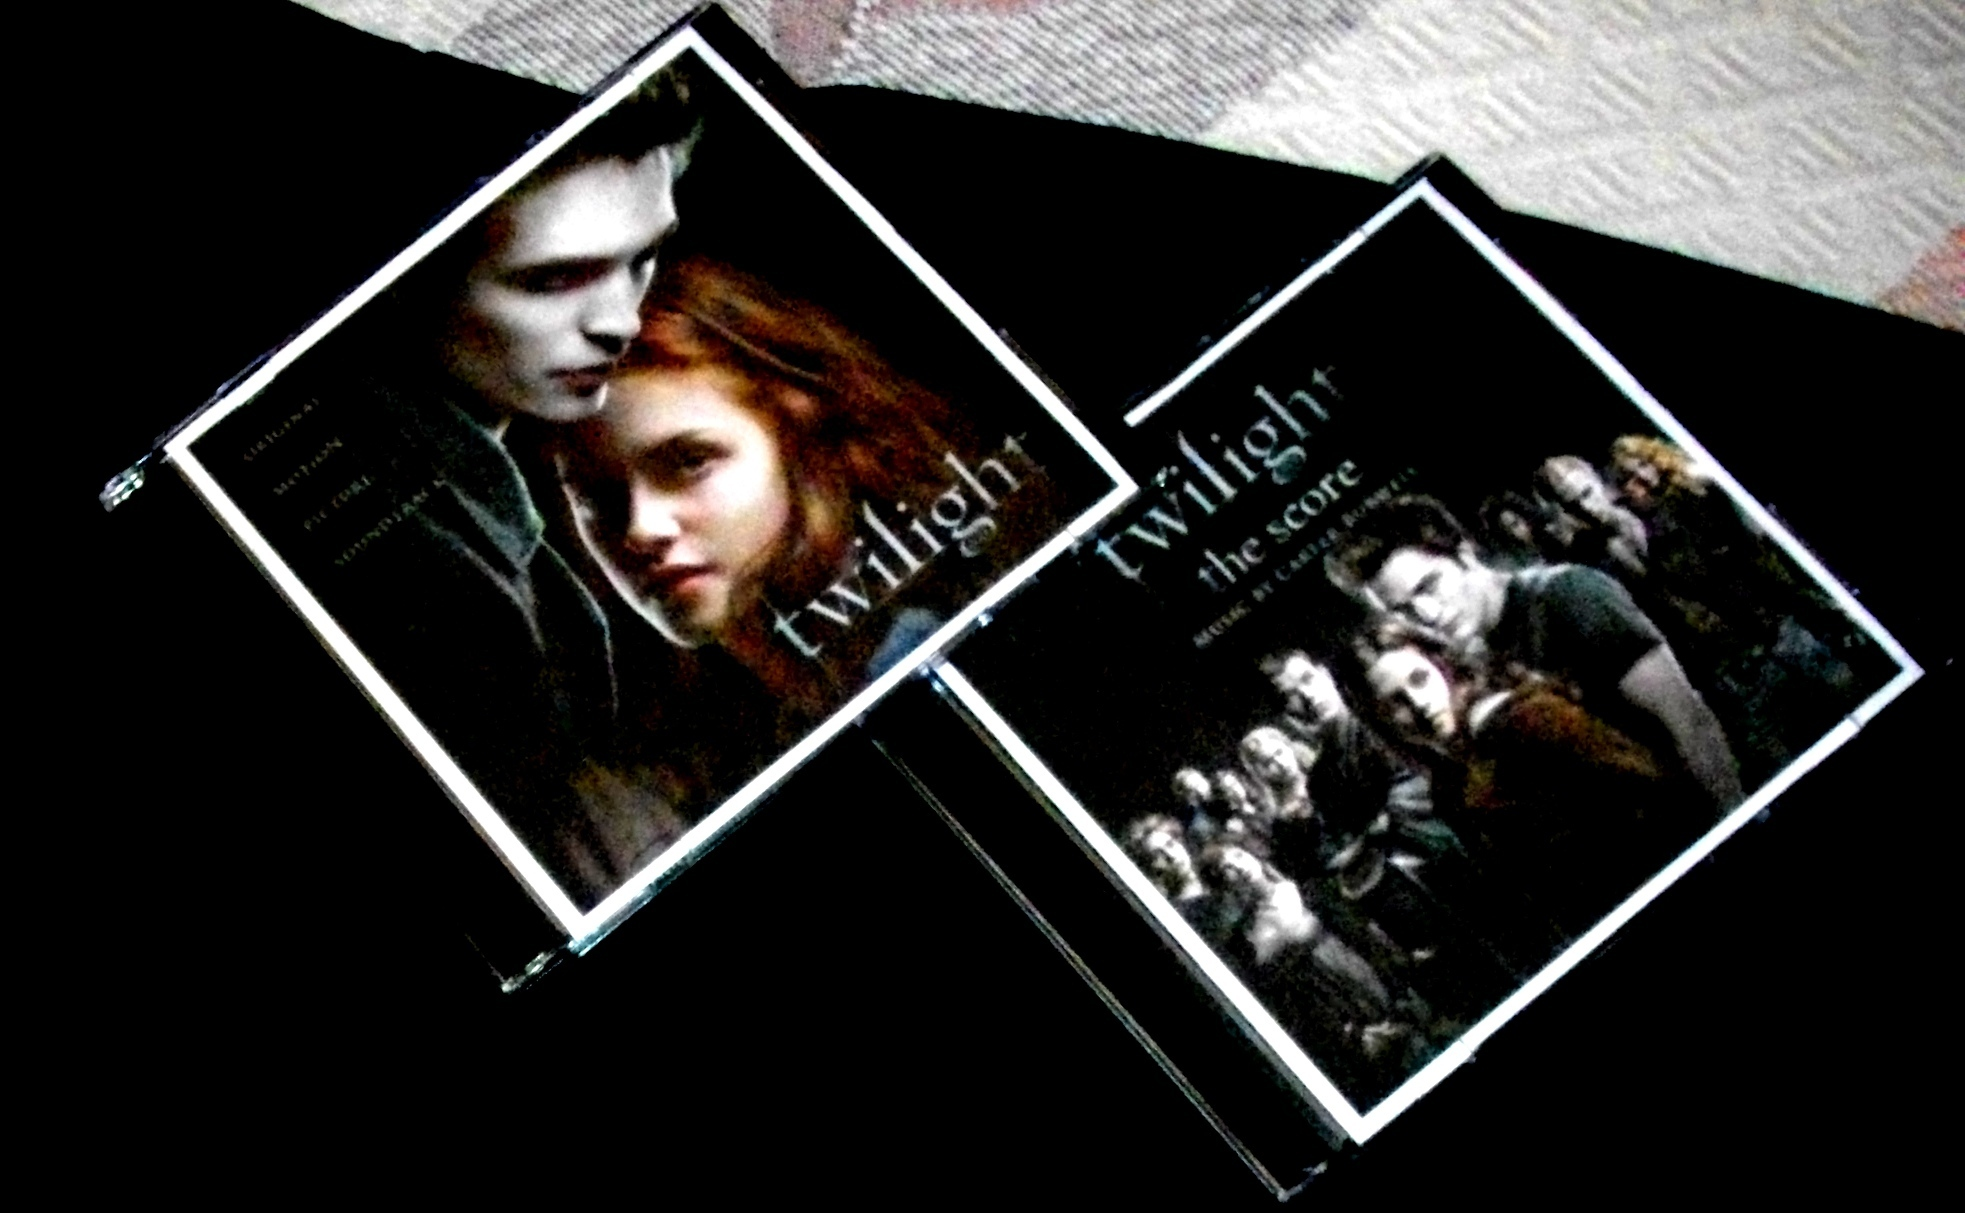 why the twilight series is so Conceived so, and carried by this but by the end of the series she warms to it film portrayal mackenzie foy on october 7, 2010, stephenie meyer released a message on twilight facebook that said renesmee cullen was to be portrayed by mackenzie foy in breaking dawn - part 1 and breaking.